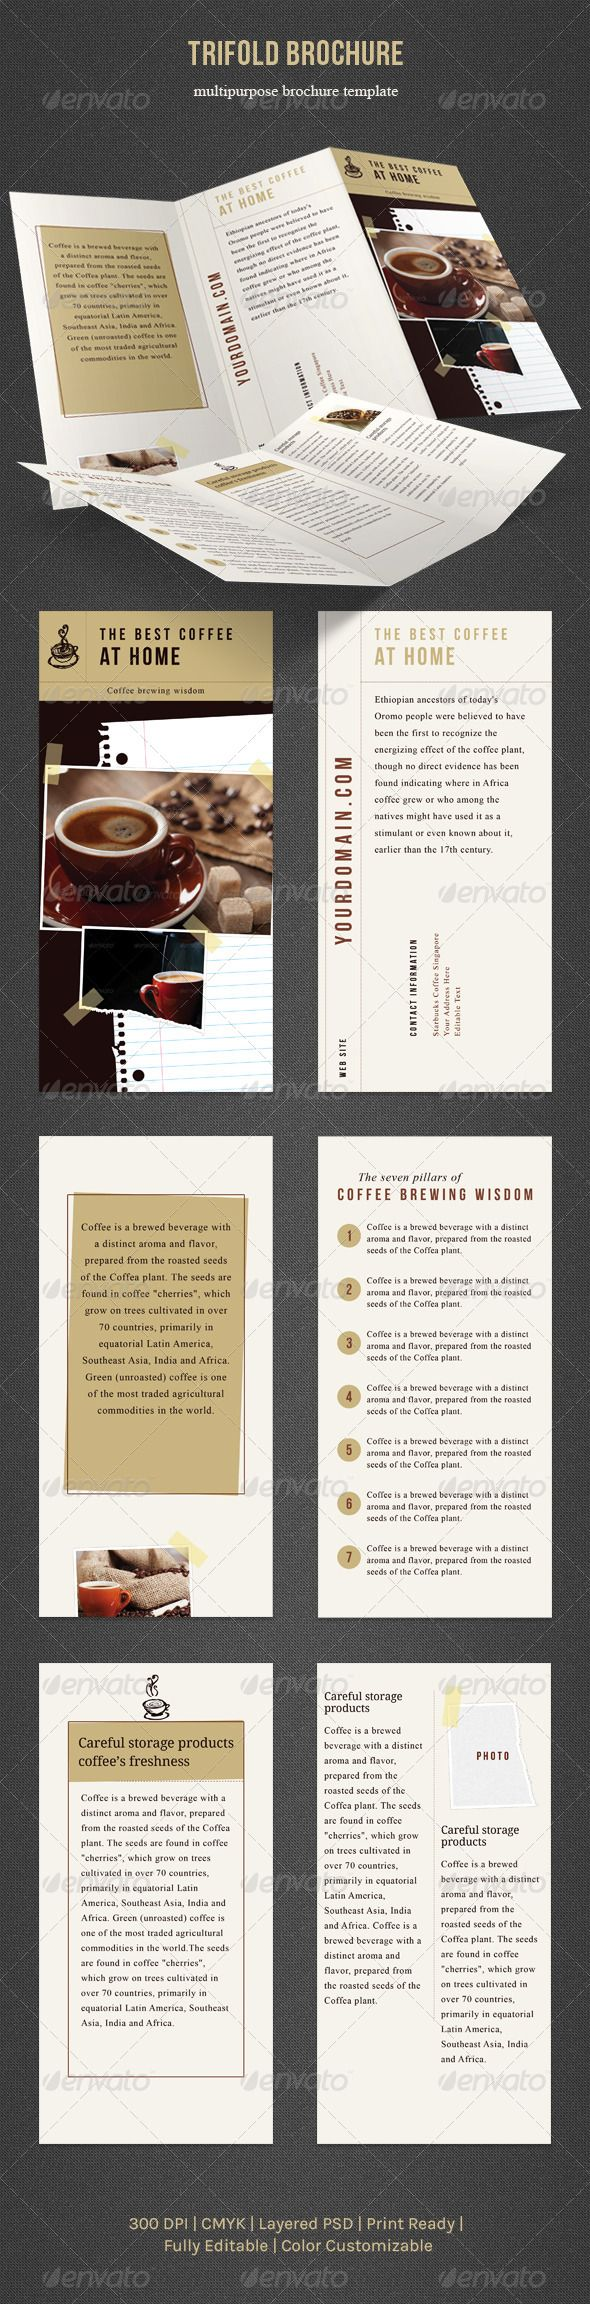 Print Templates - Trifold Brochure | GraphicRiver